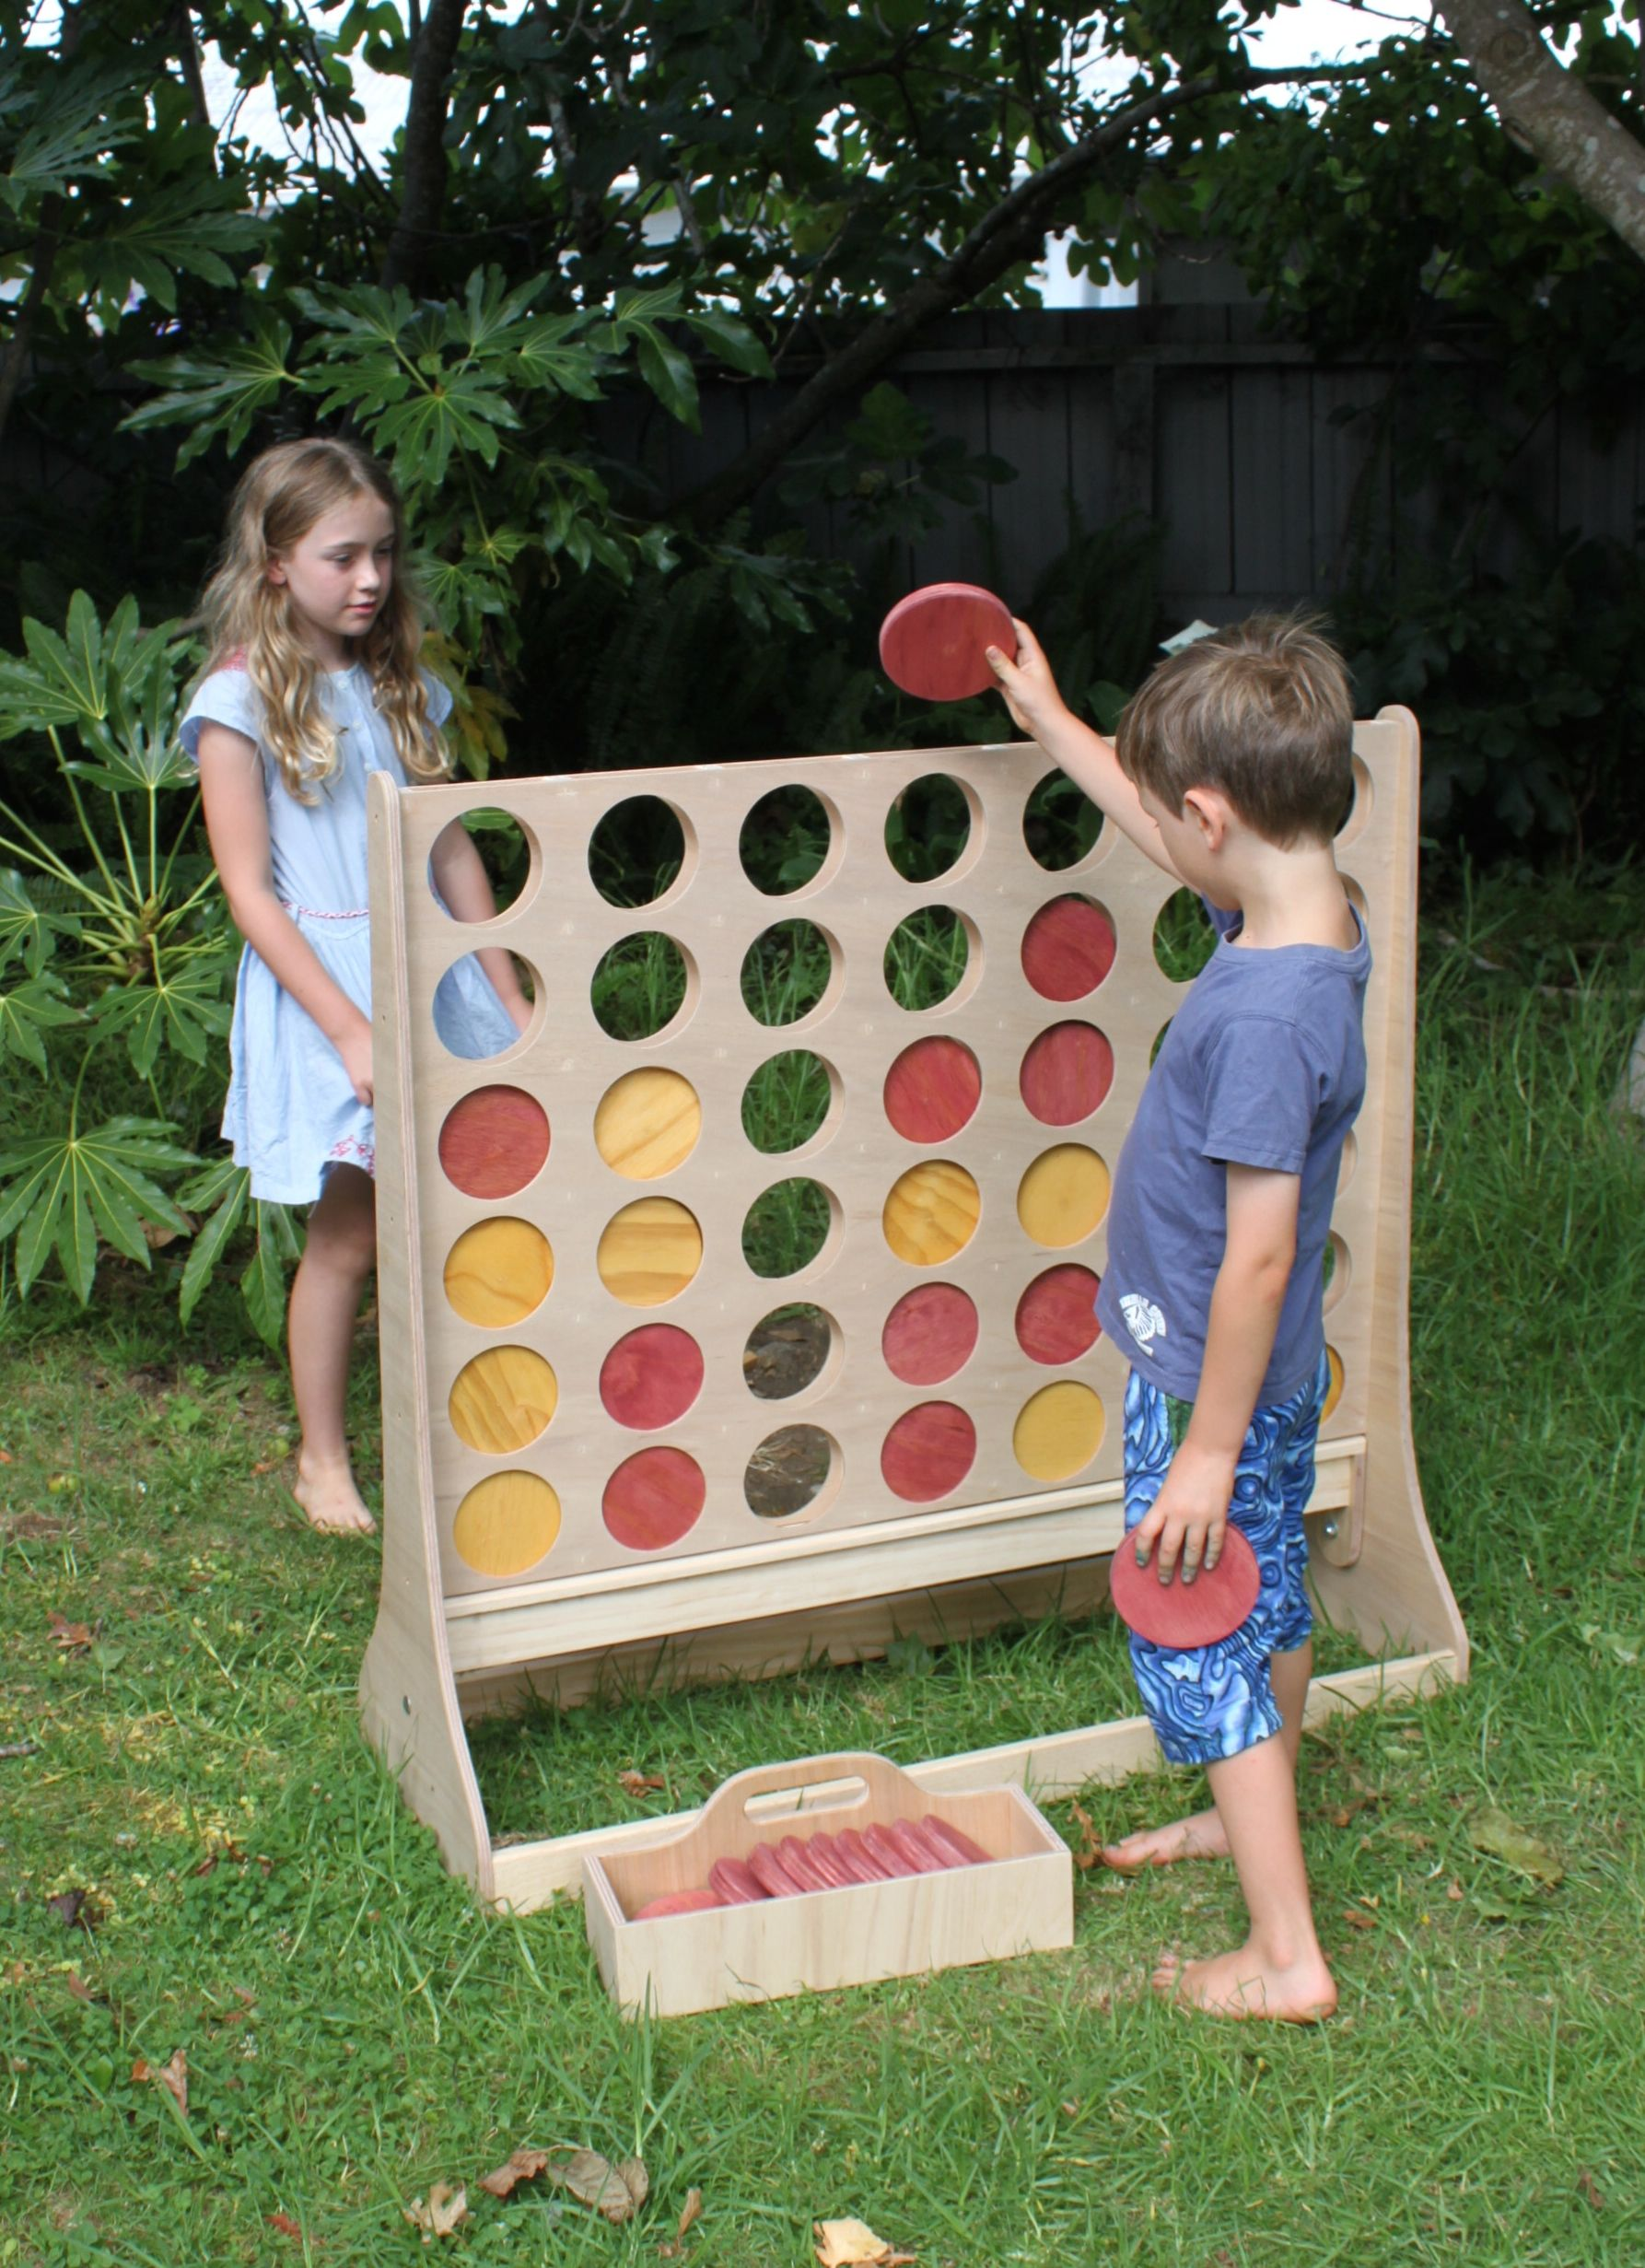 QUOITS CONNECT 4 IN A ROW NEW GARDEN LAWN BBQ PARTY GAMES GIANT JENGA TOWER